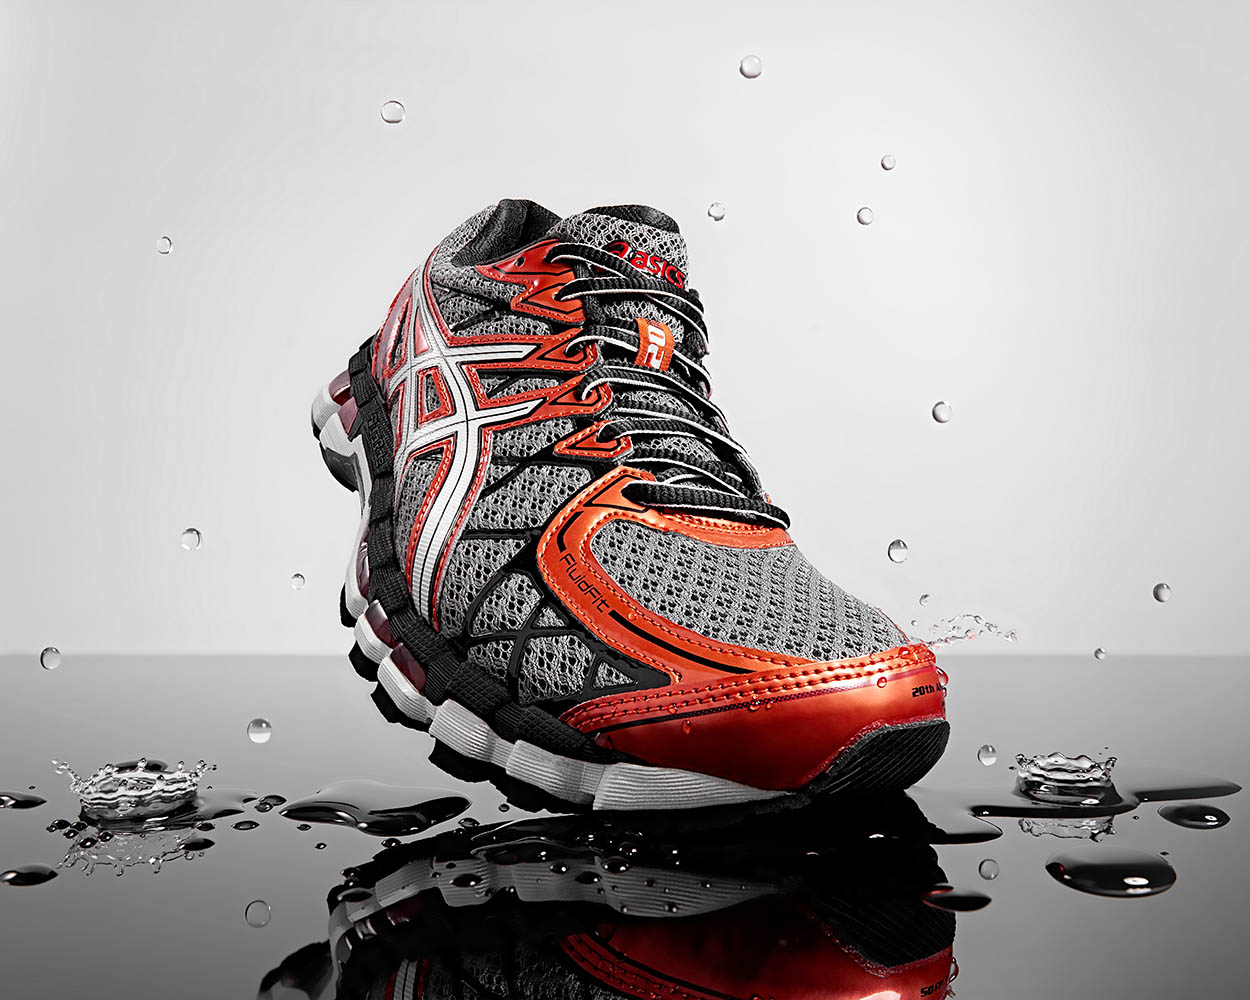 paul_christey_photography_brisbane_product_asics_trainer_low-res